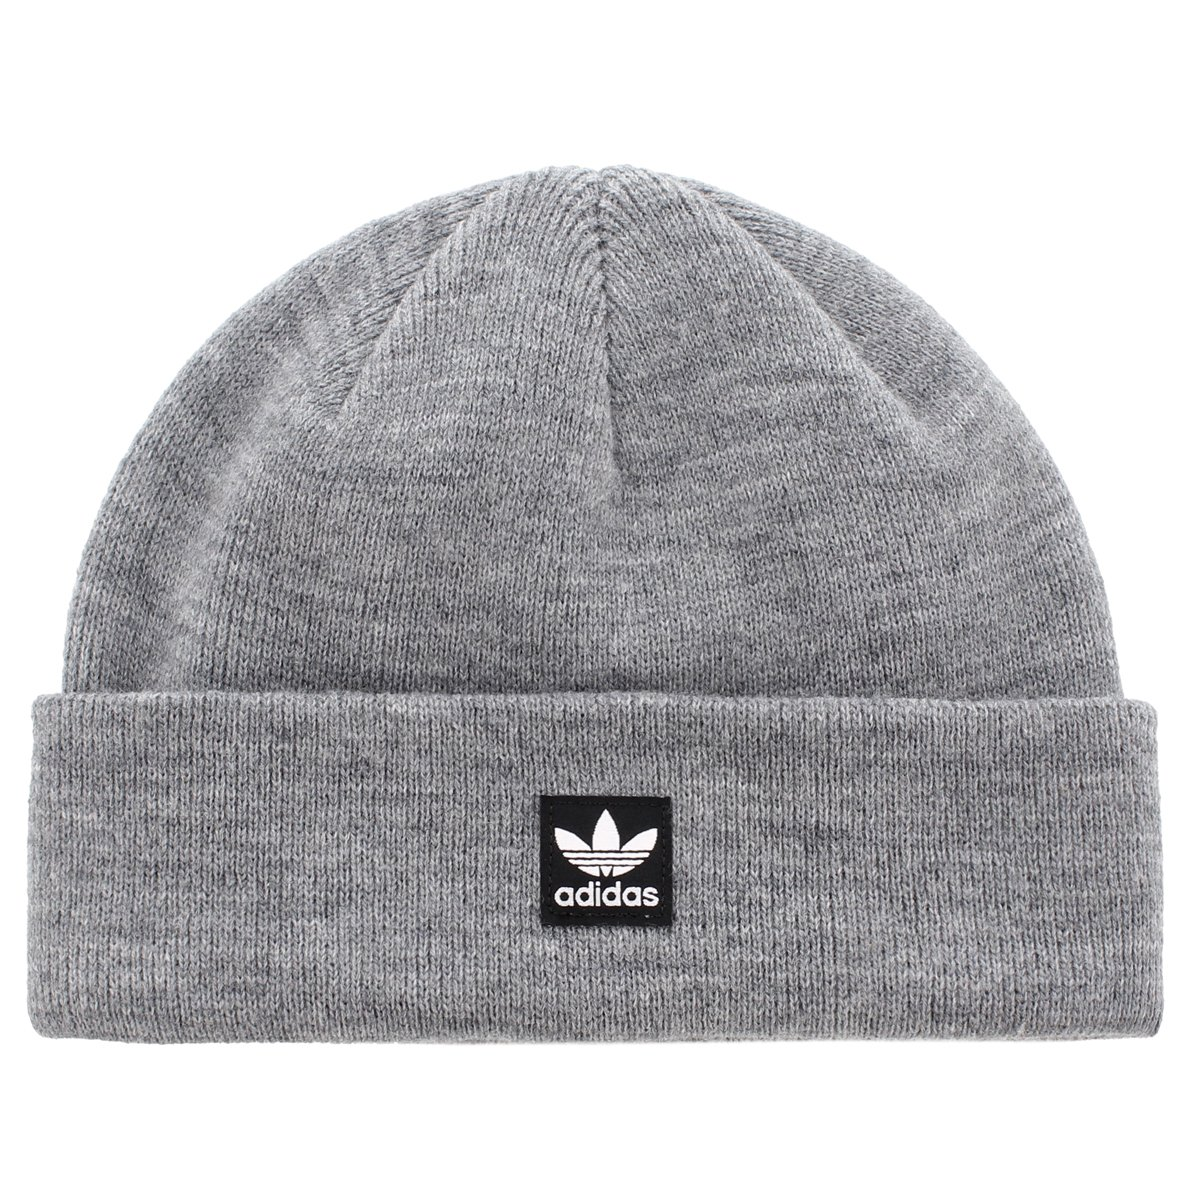 Adidas Mens Originals Starboard Knit Beanie, Heather Grey, One Size